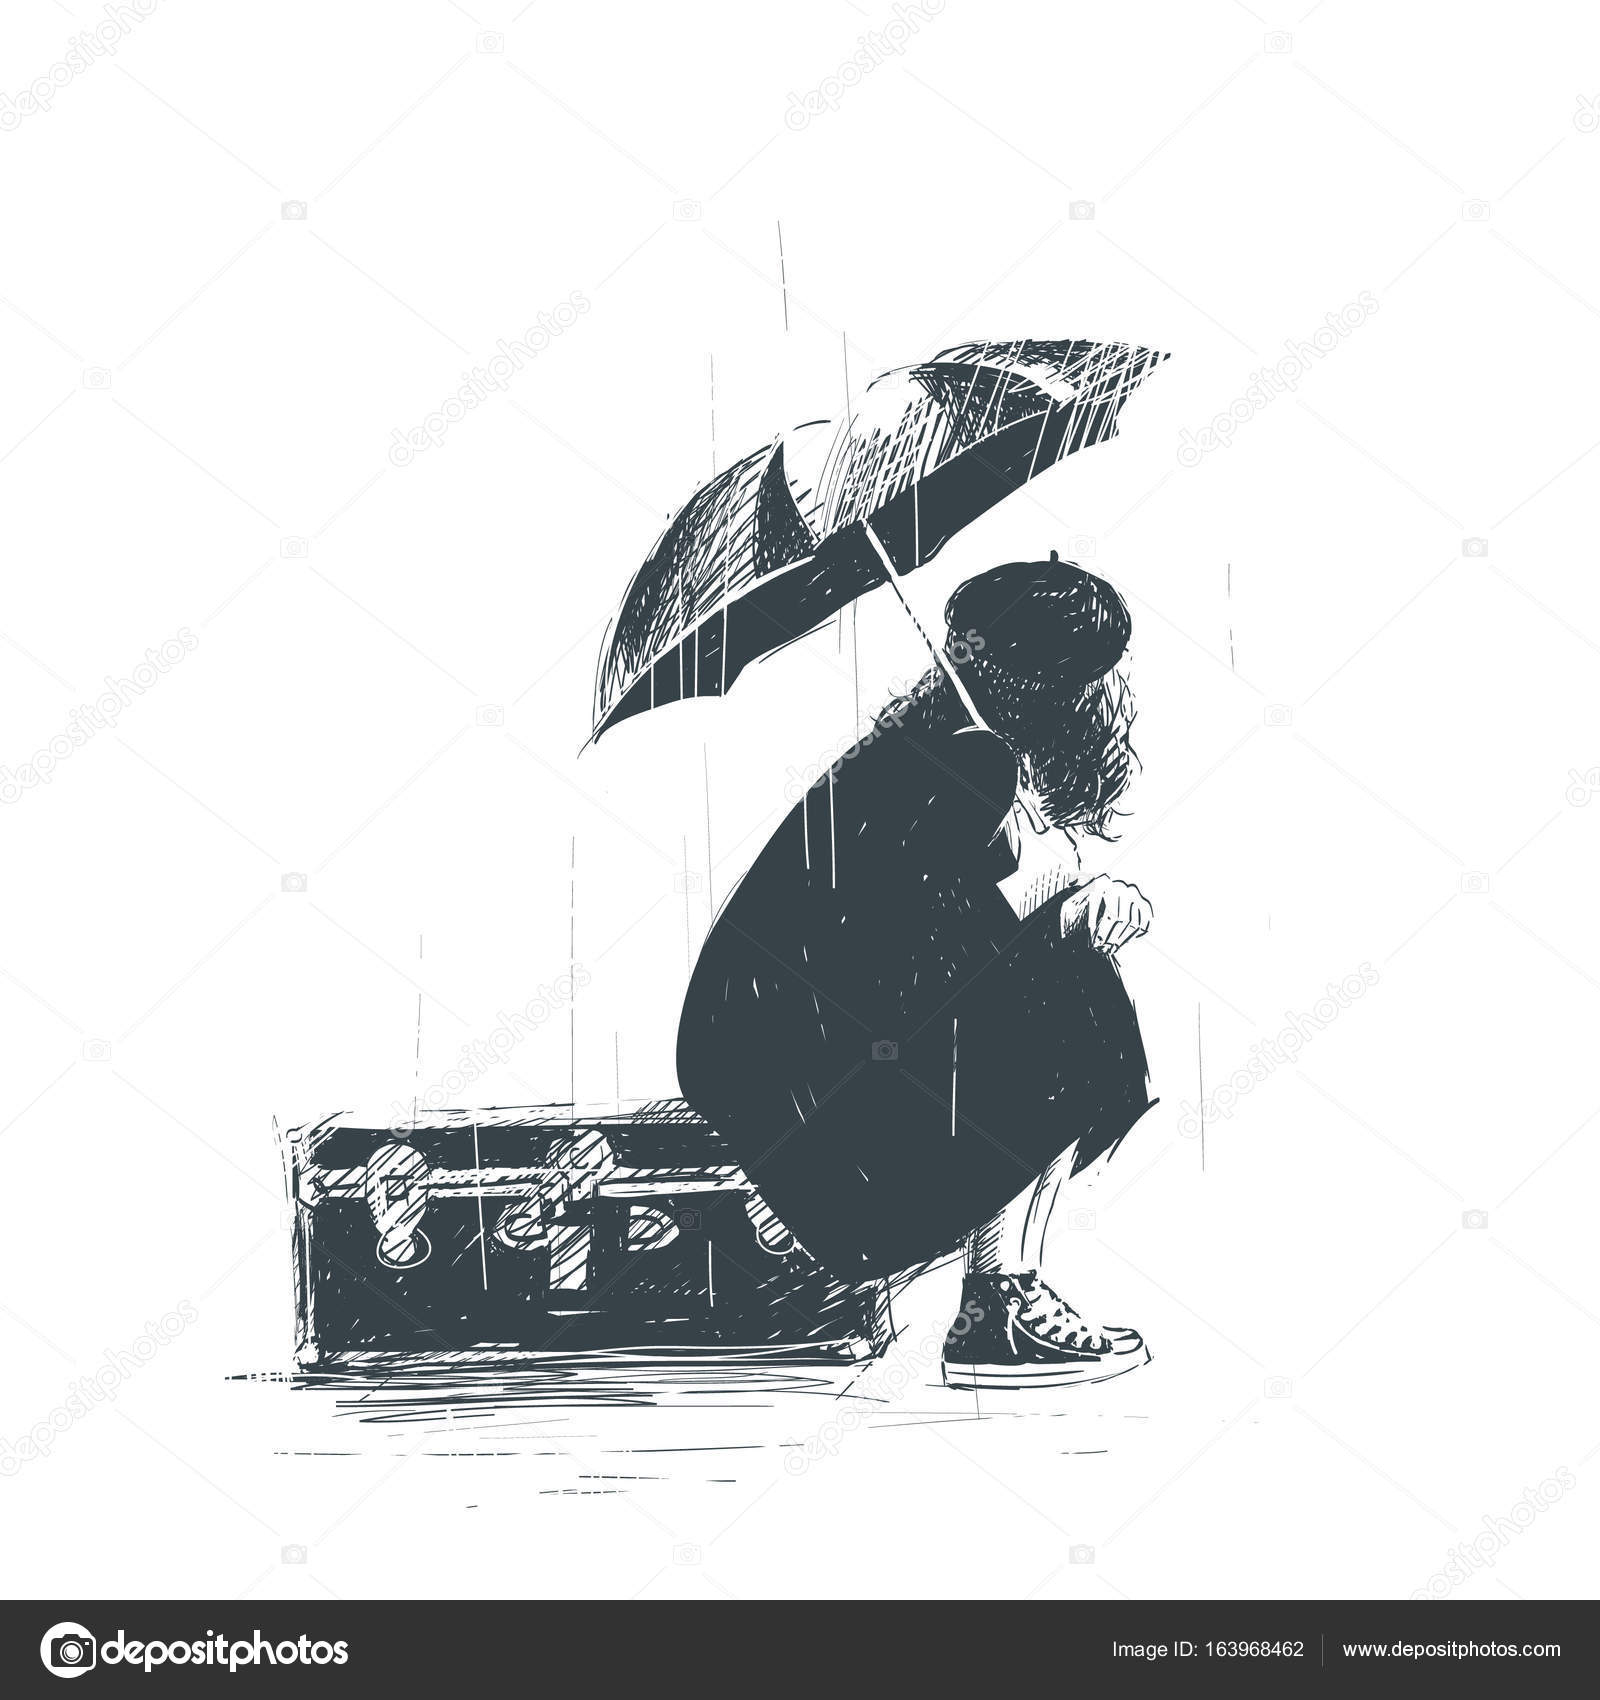 Lonely girl is sitting on the luggage with an umbrella in her hands during the rain sketch vector by hope designer